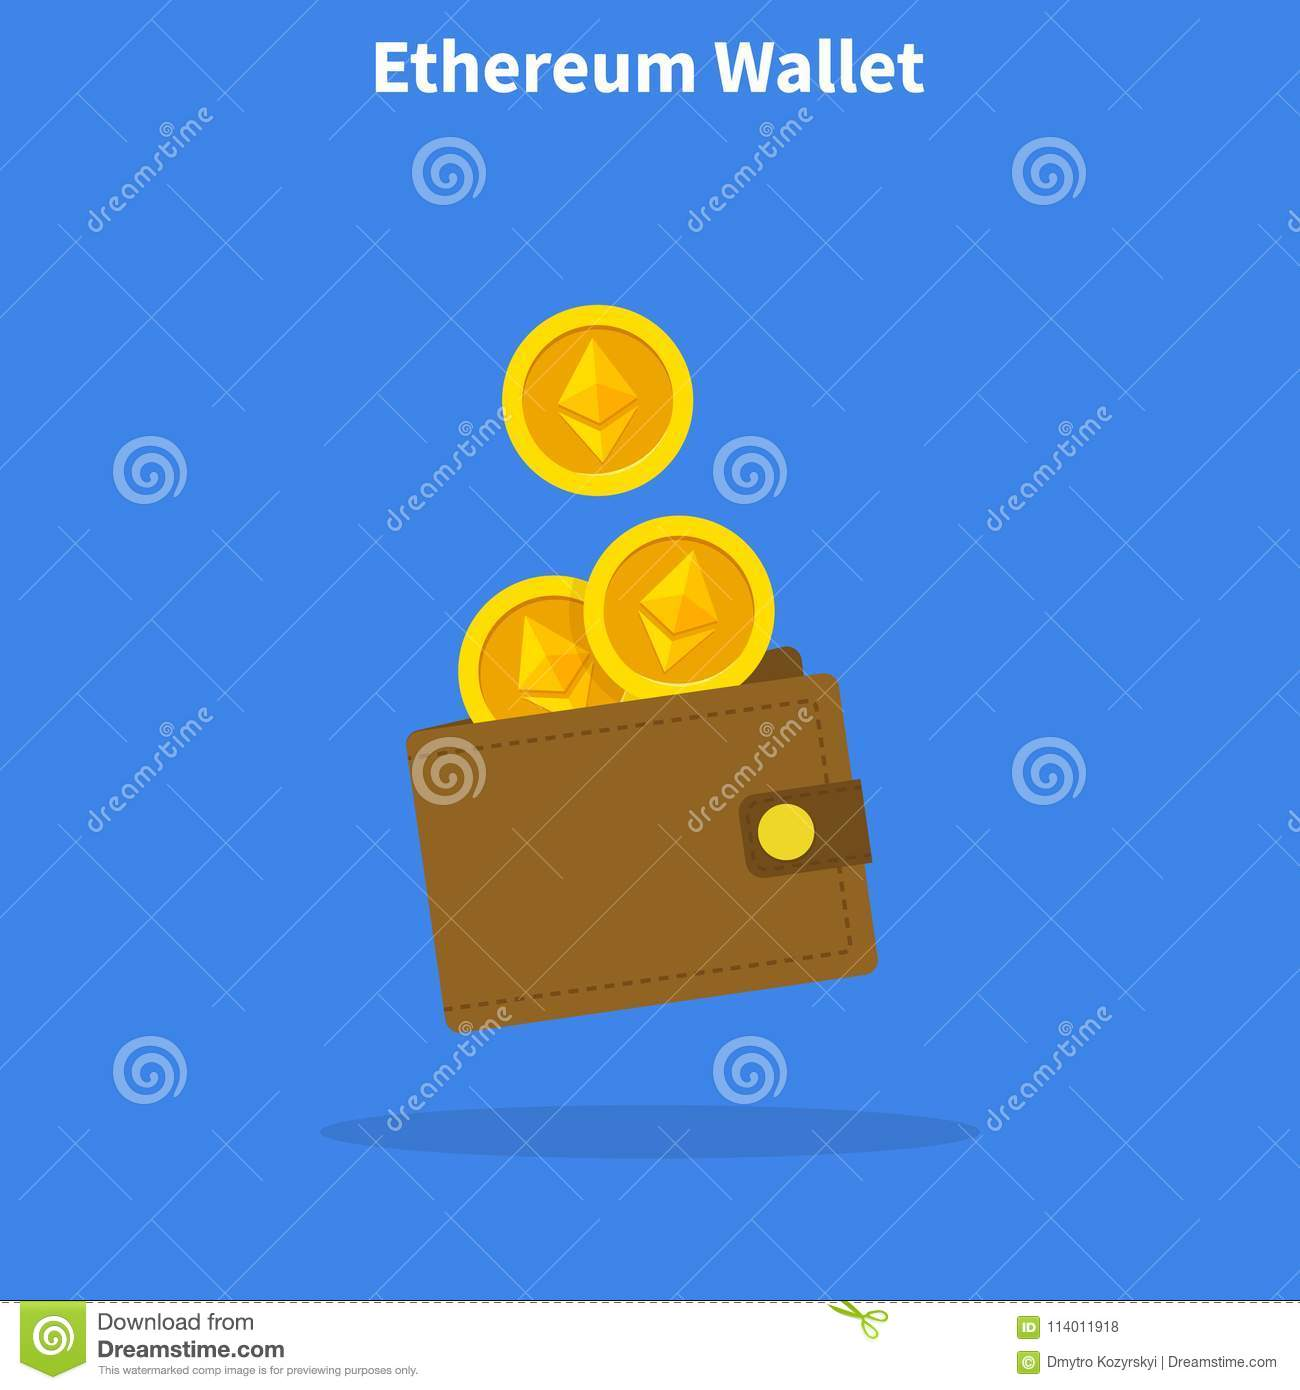 Ethereum Wallet With Coins Crypto Currency In The Design Concept Vector Illustration